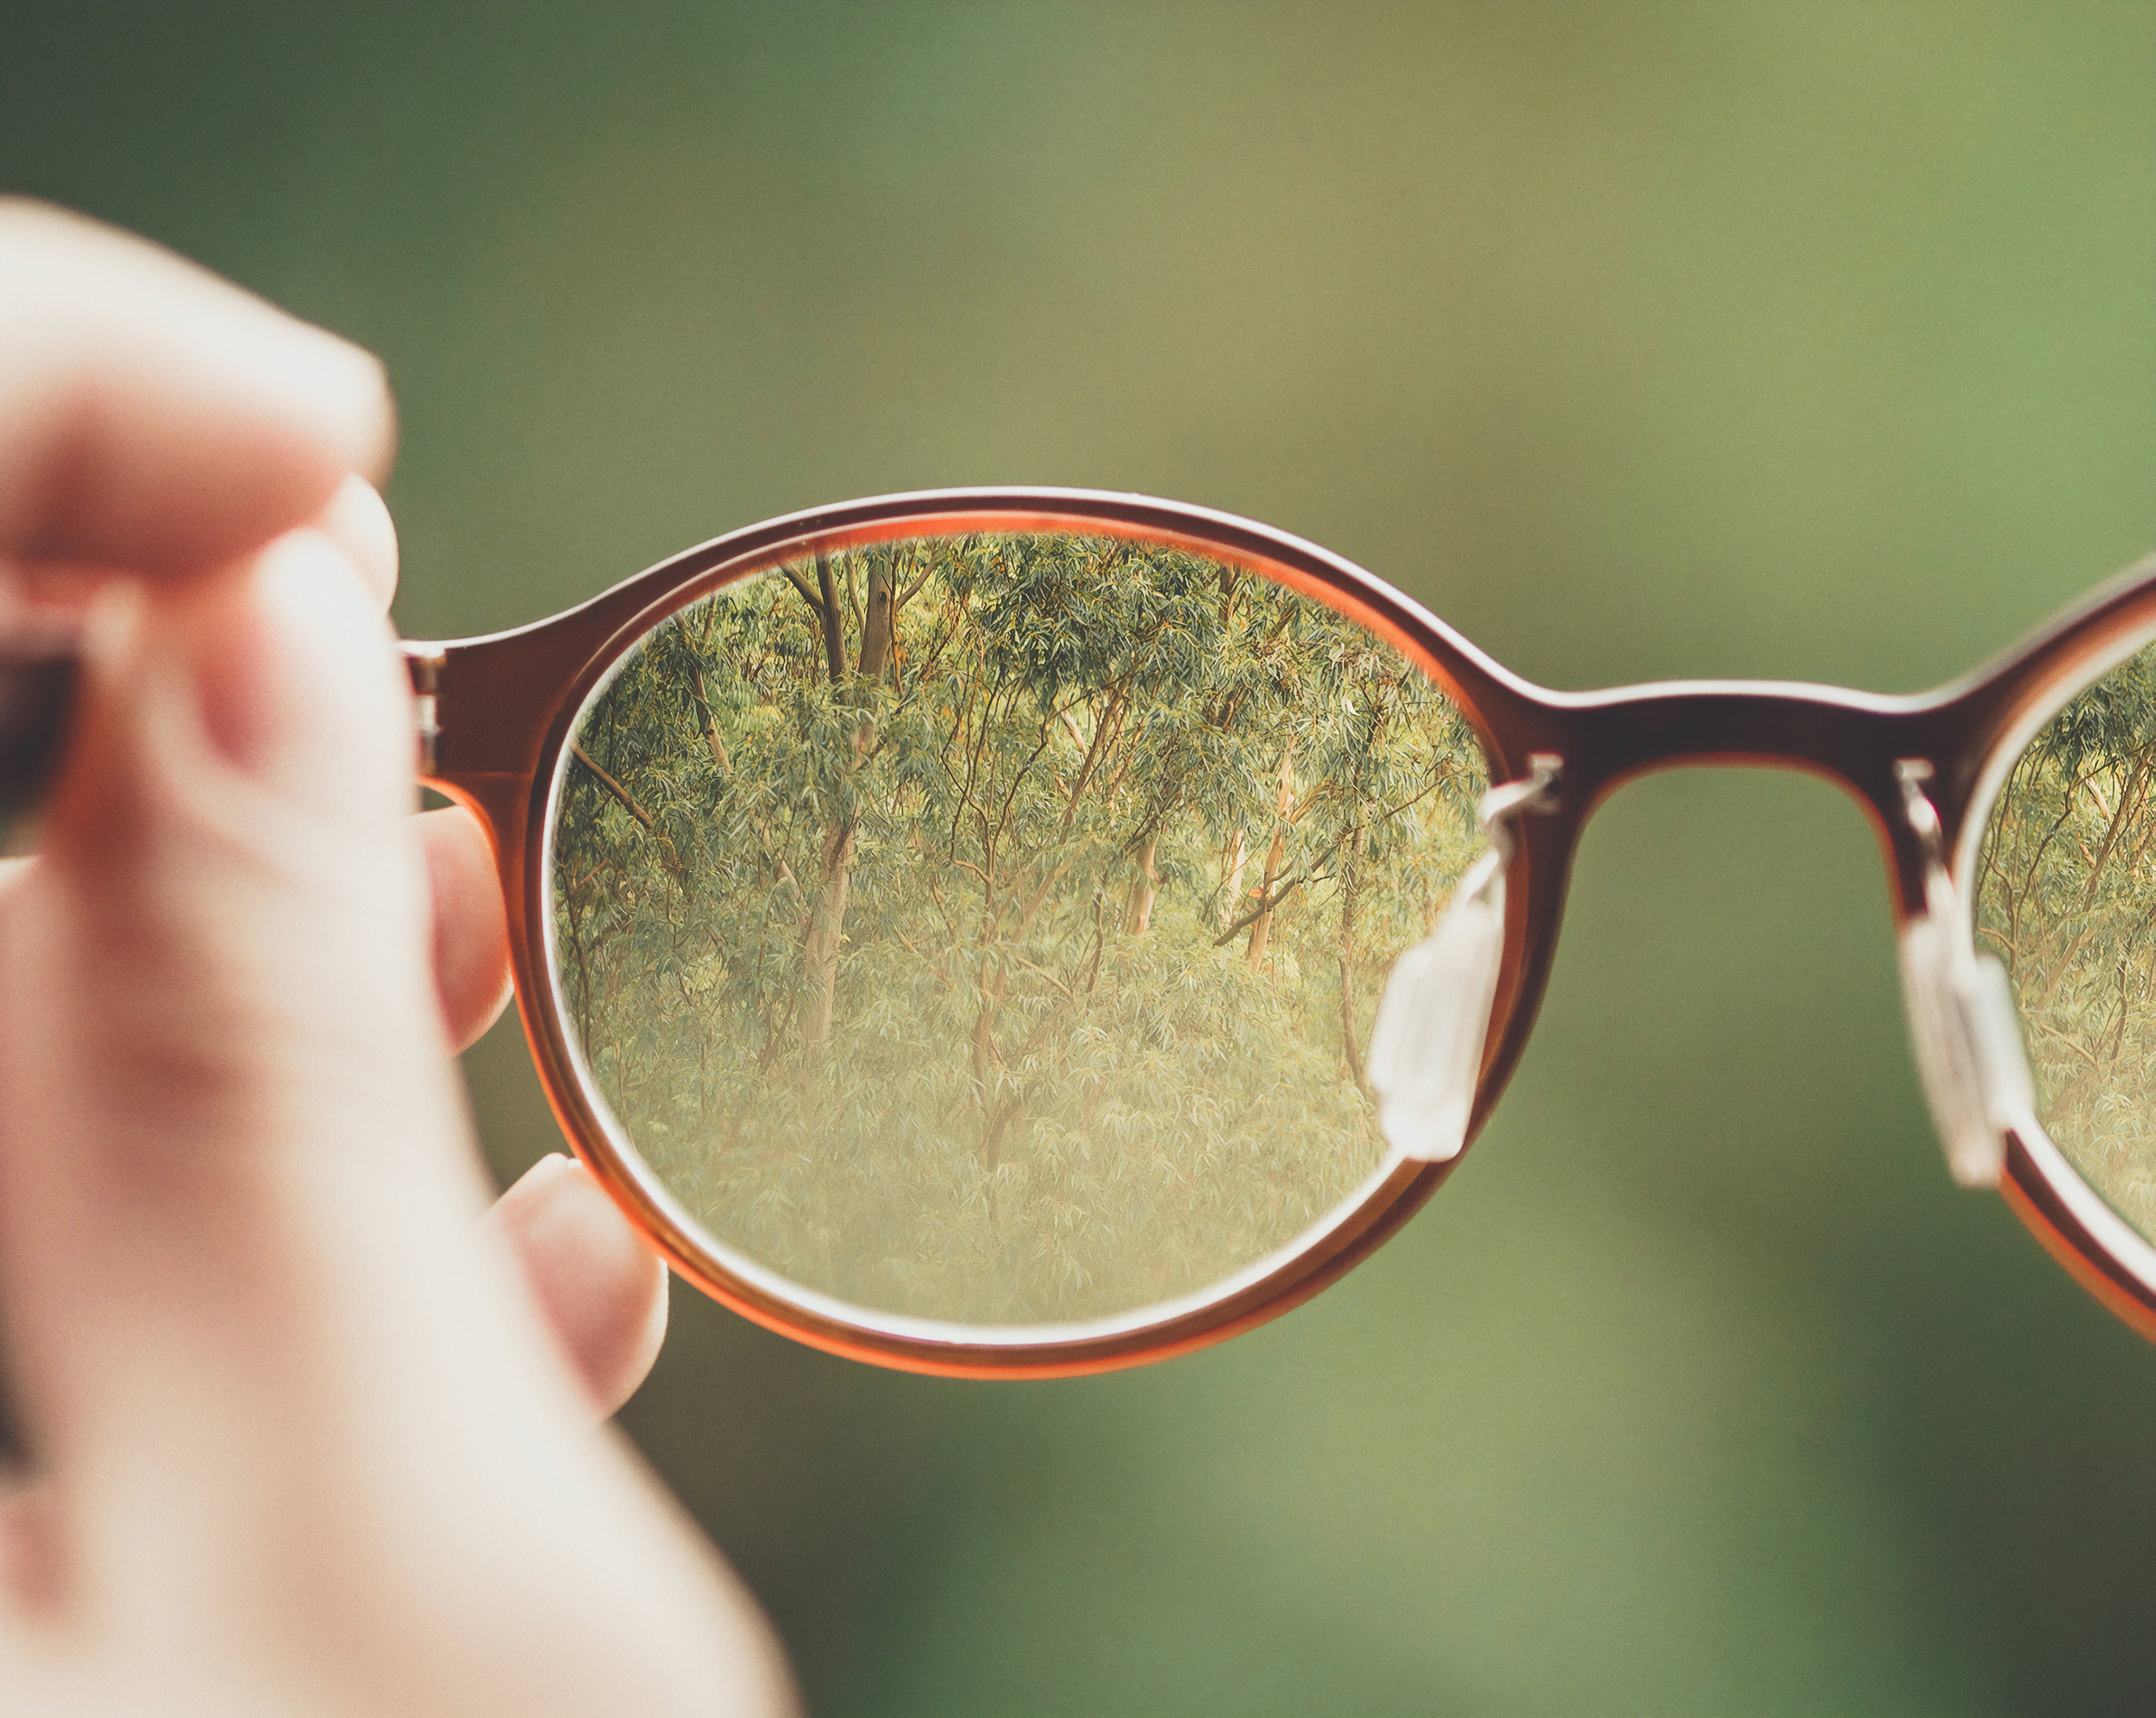 View through an eyeglasses lens brings forest into focus.